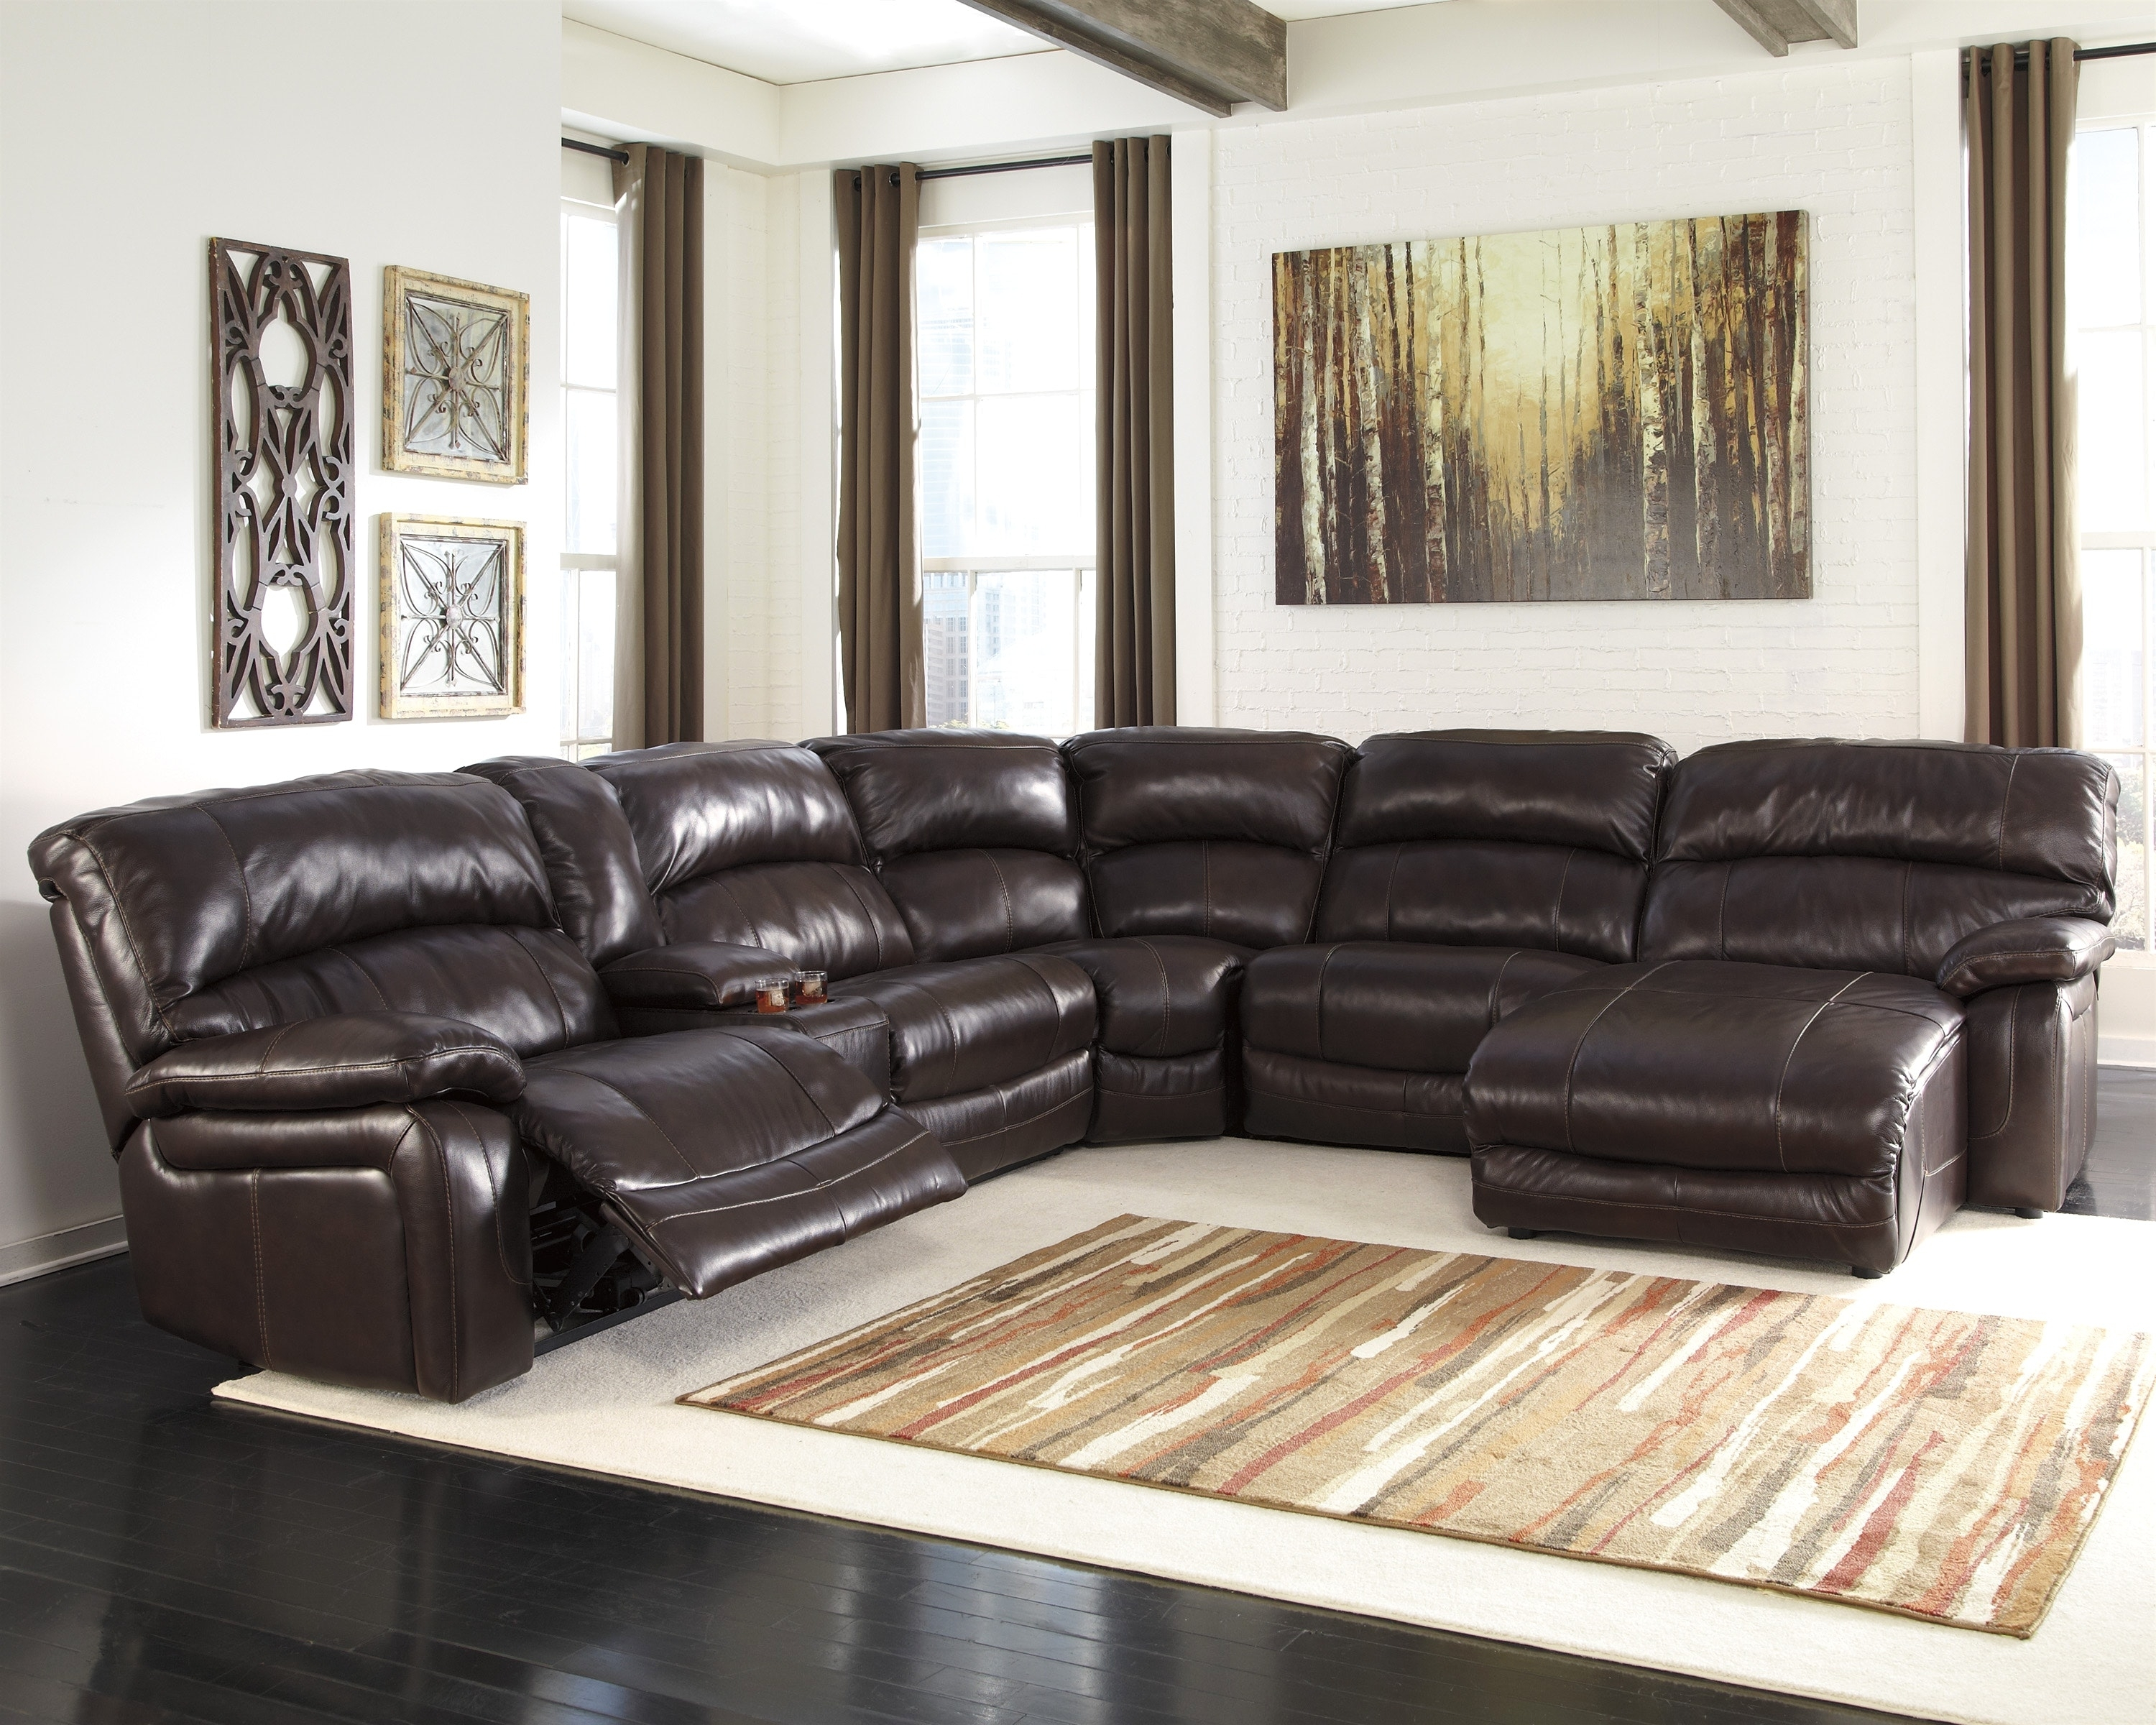 Sectional Sofa : L Shaped Sectional Couch In Stunning Large L Shaped throughout Sectional Sofas At Raymour And Flanigan (Image 12 of 15)